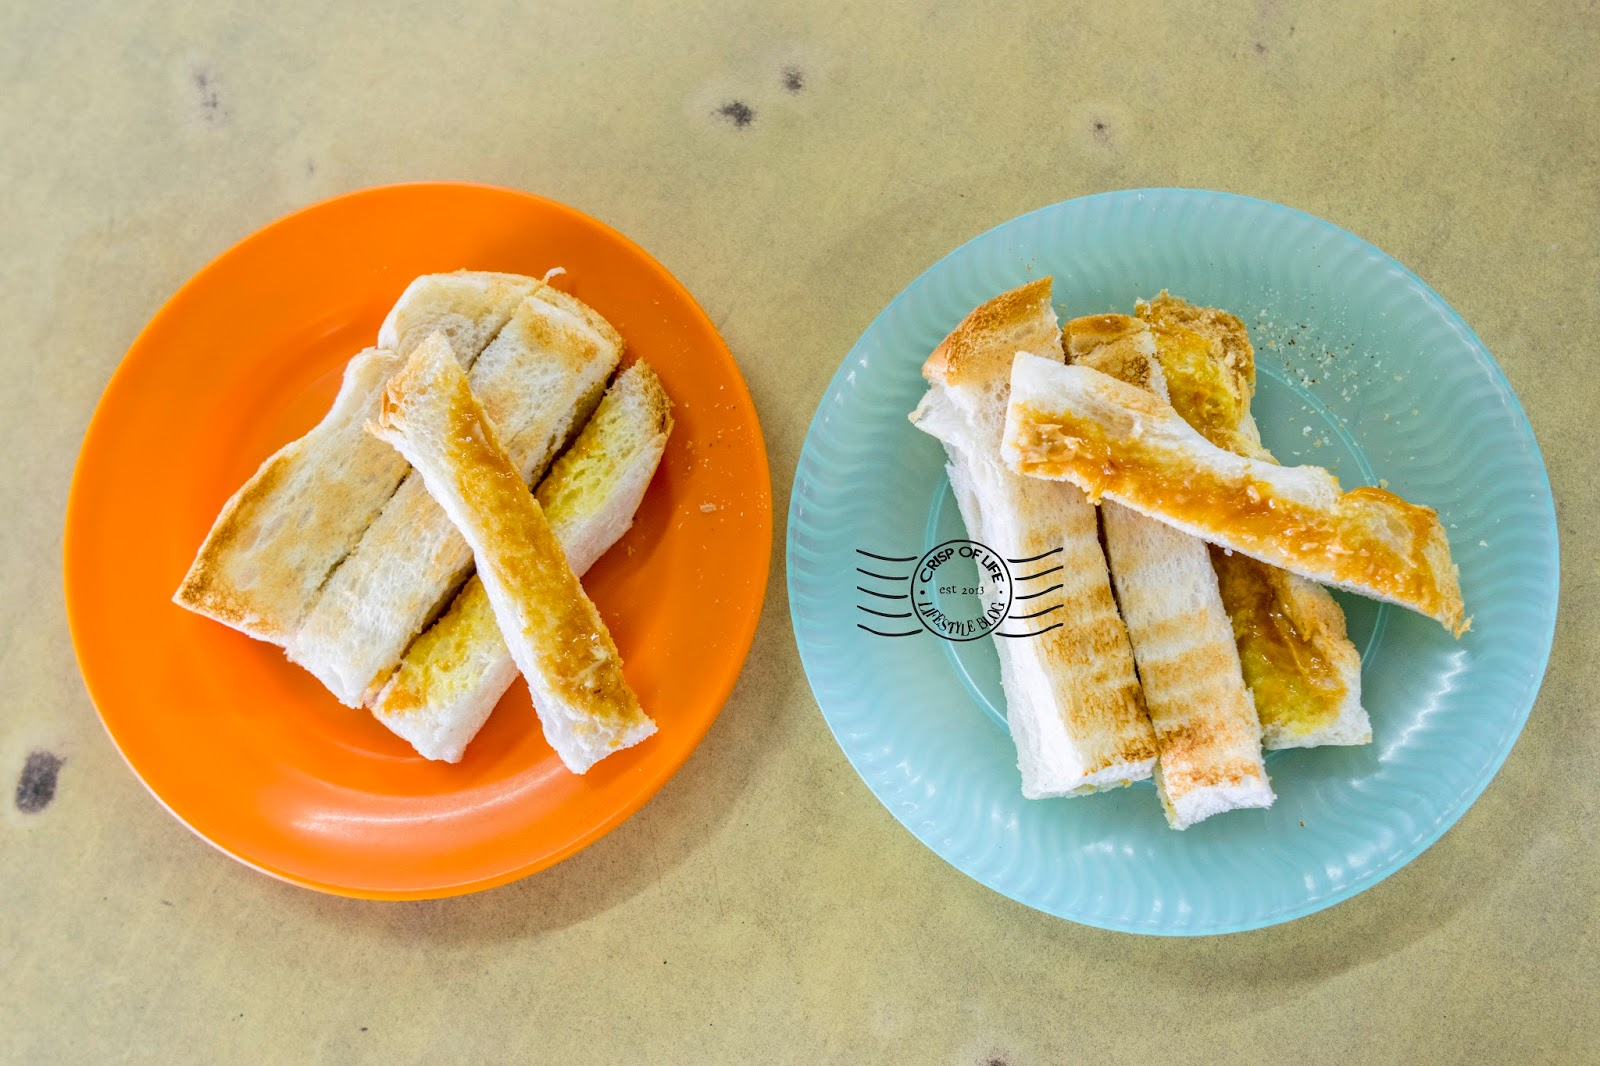 Toast in Penang